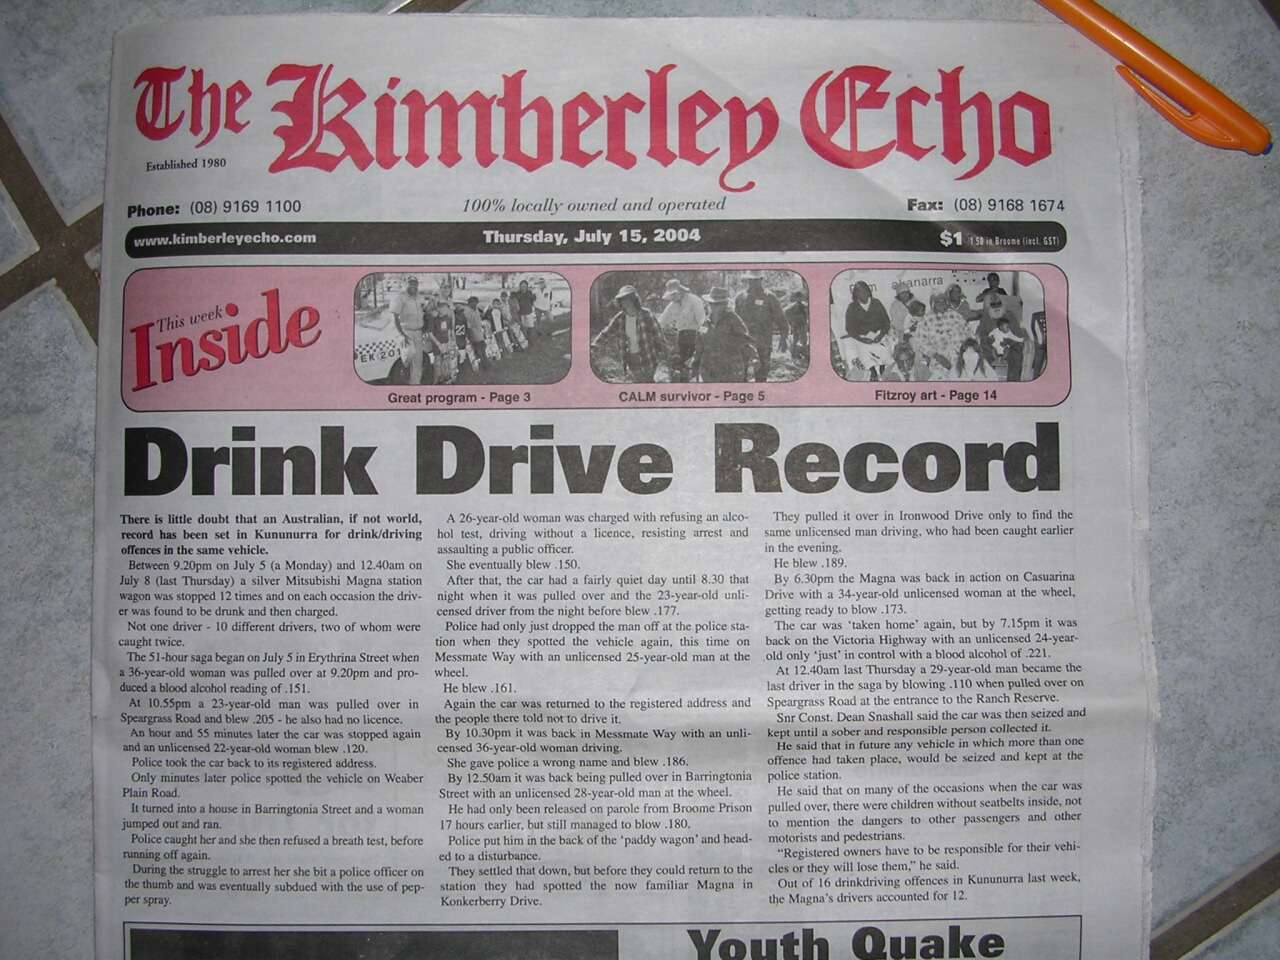 DUI Drink Driving Record